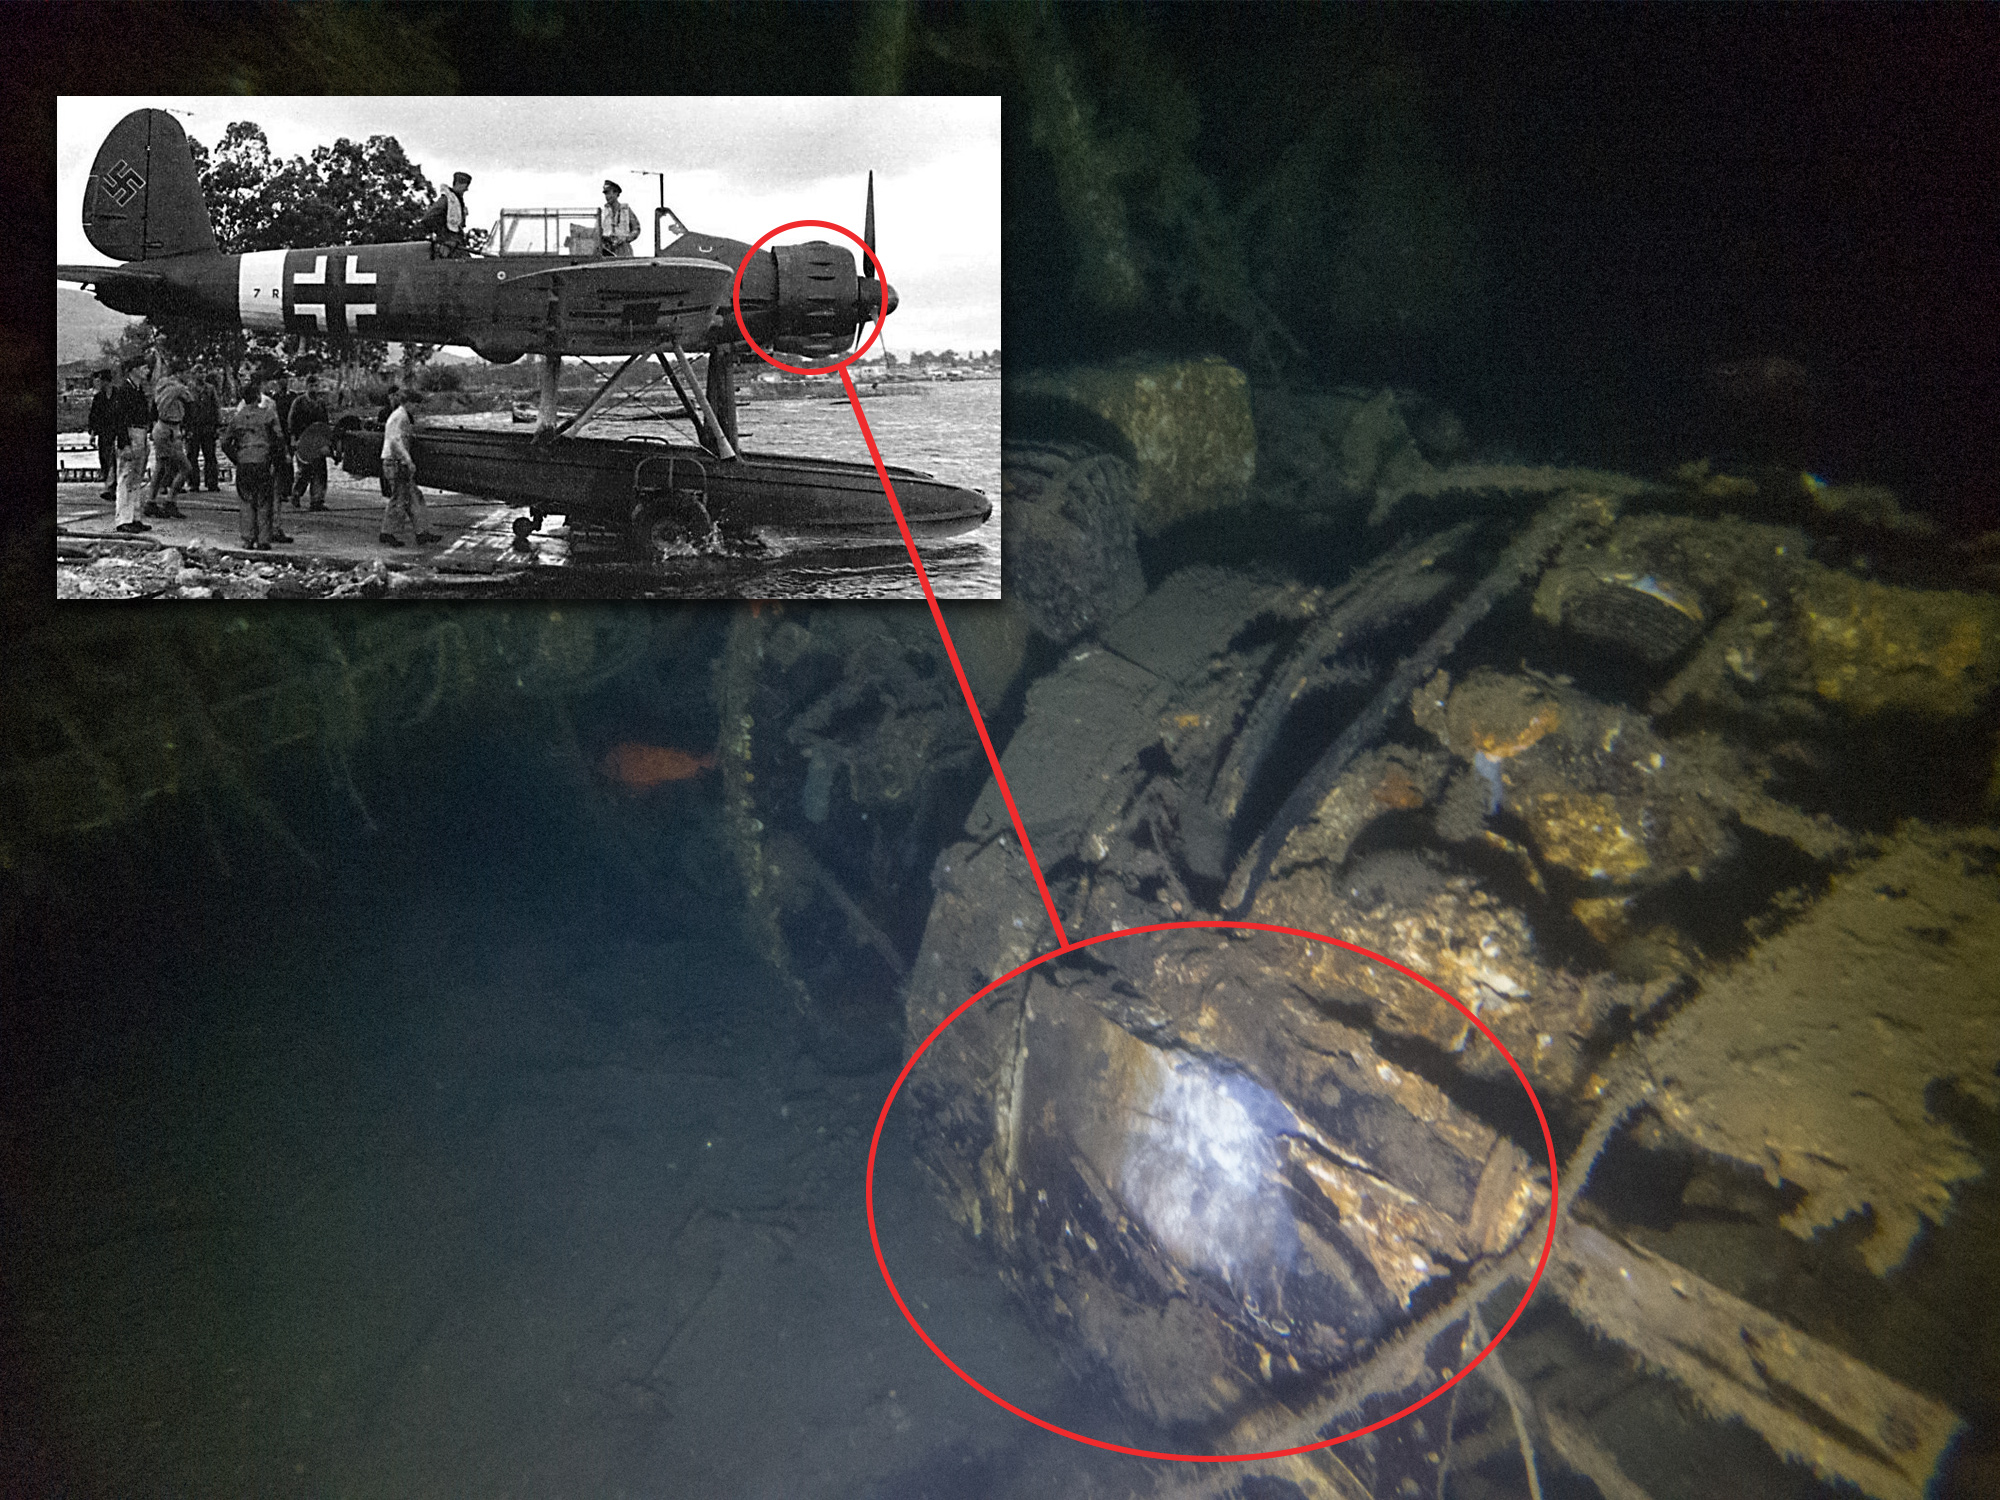 Image showing the enginge covers on an AR 196, compared to the pictures of the wreck